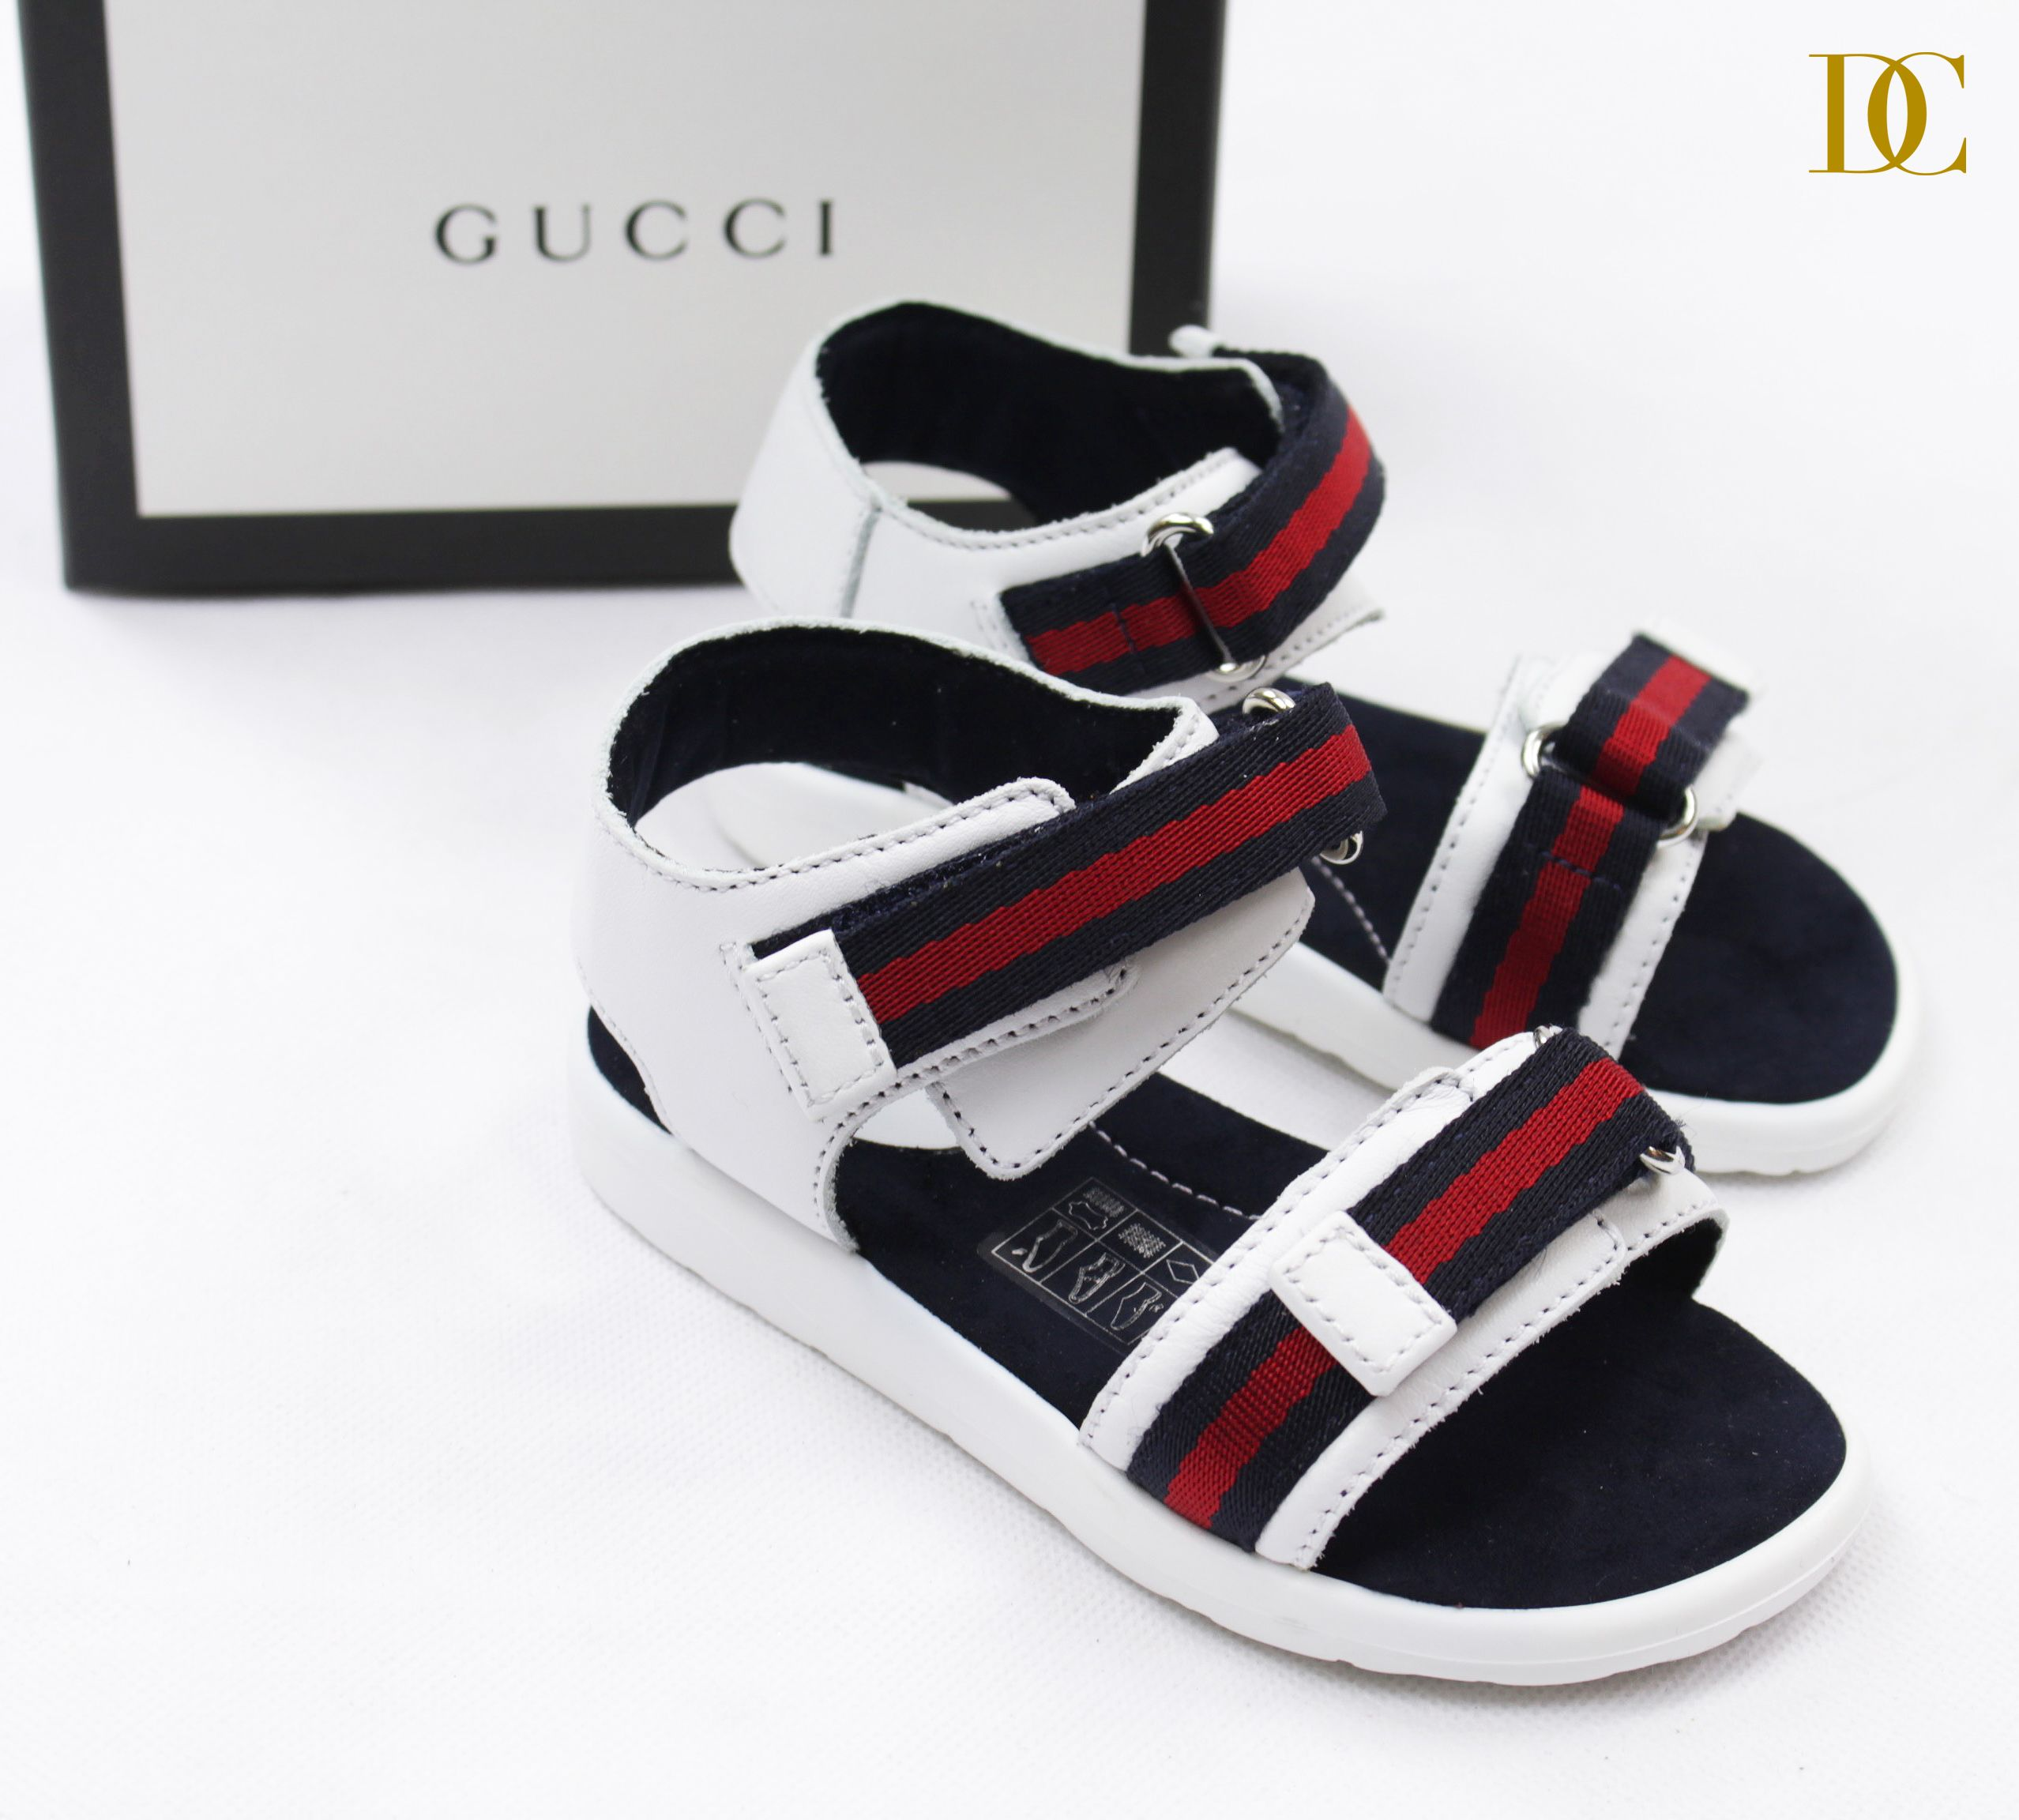 63c45f90570 Gucci boys white sandals.  gucci  sandals  boys